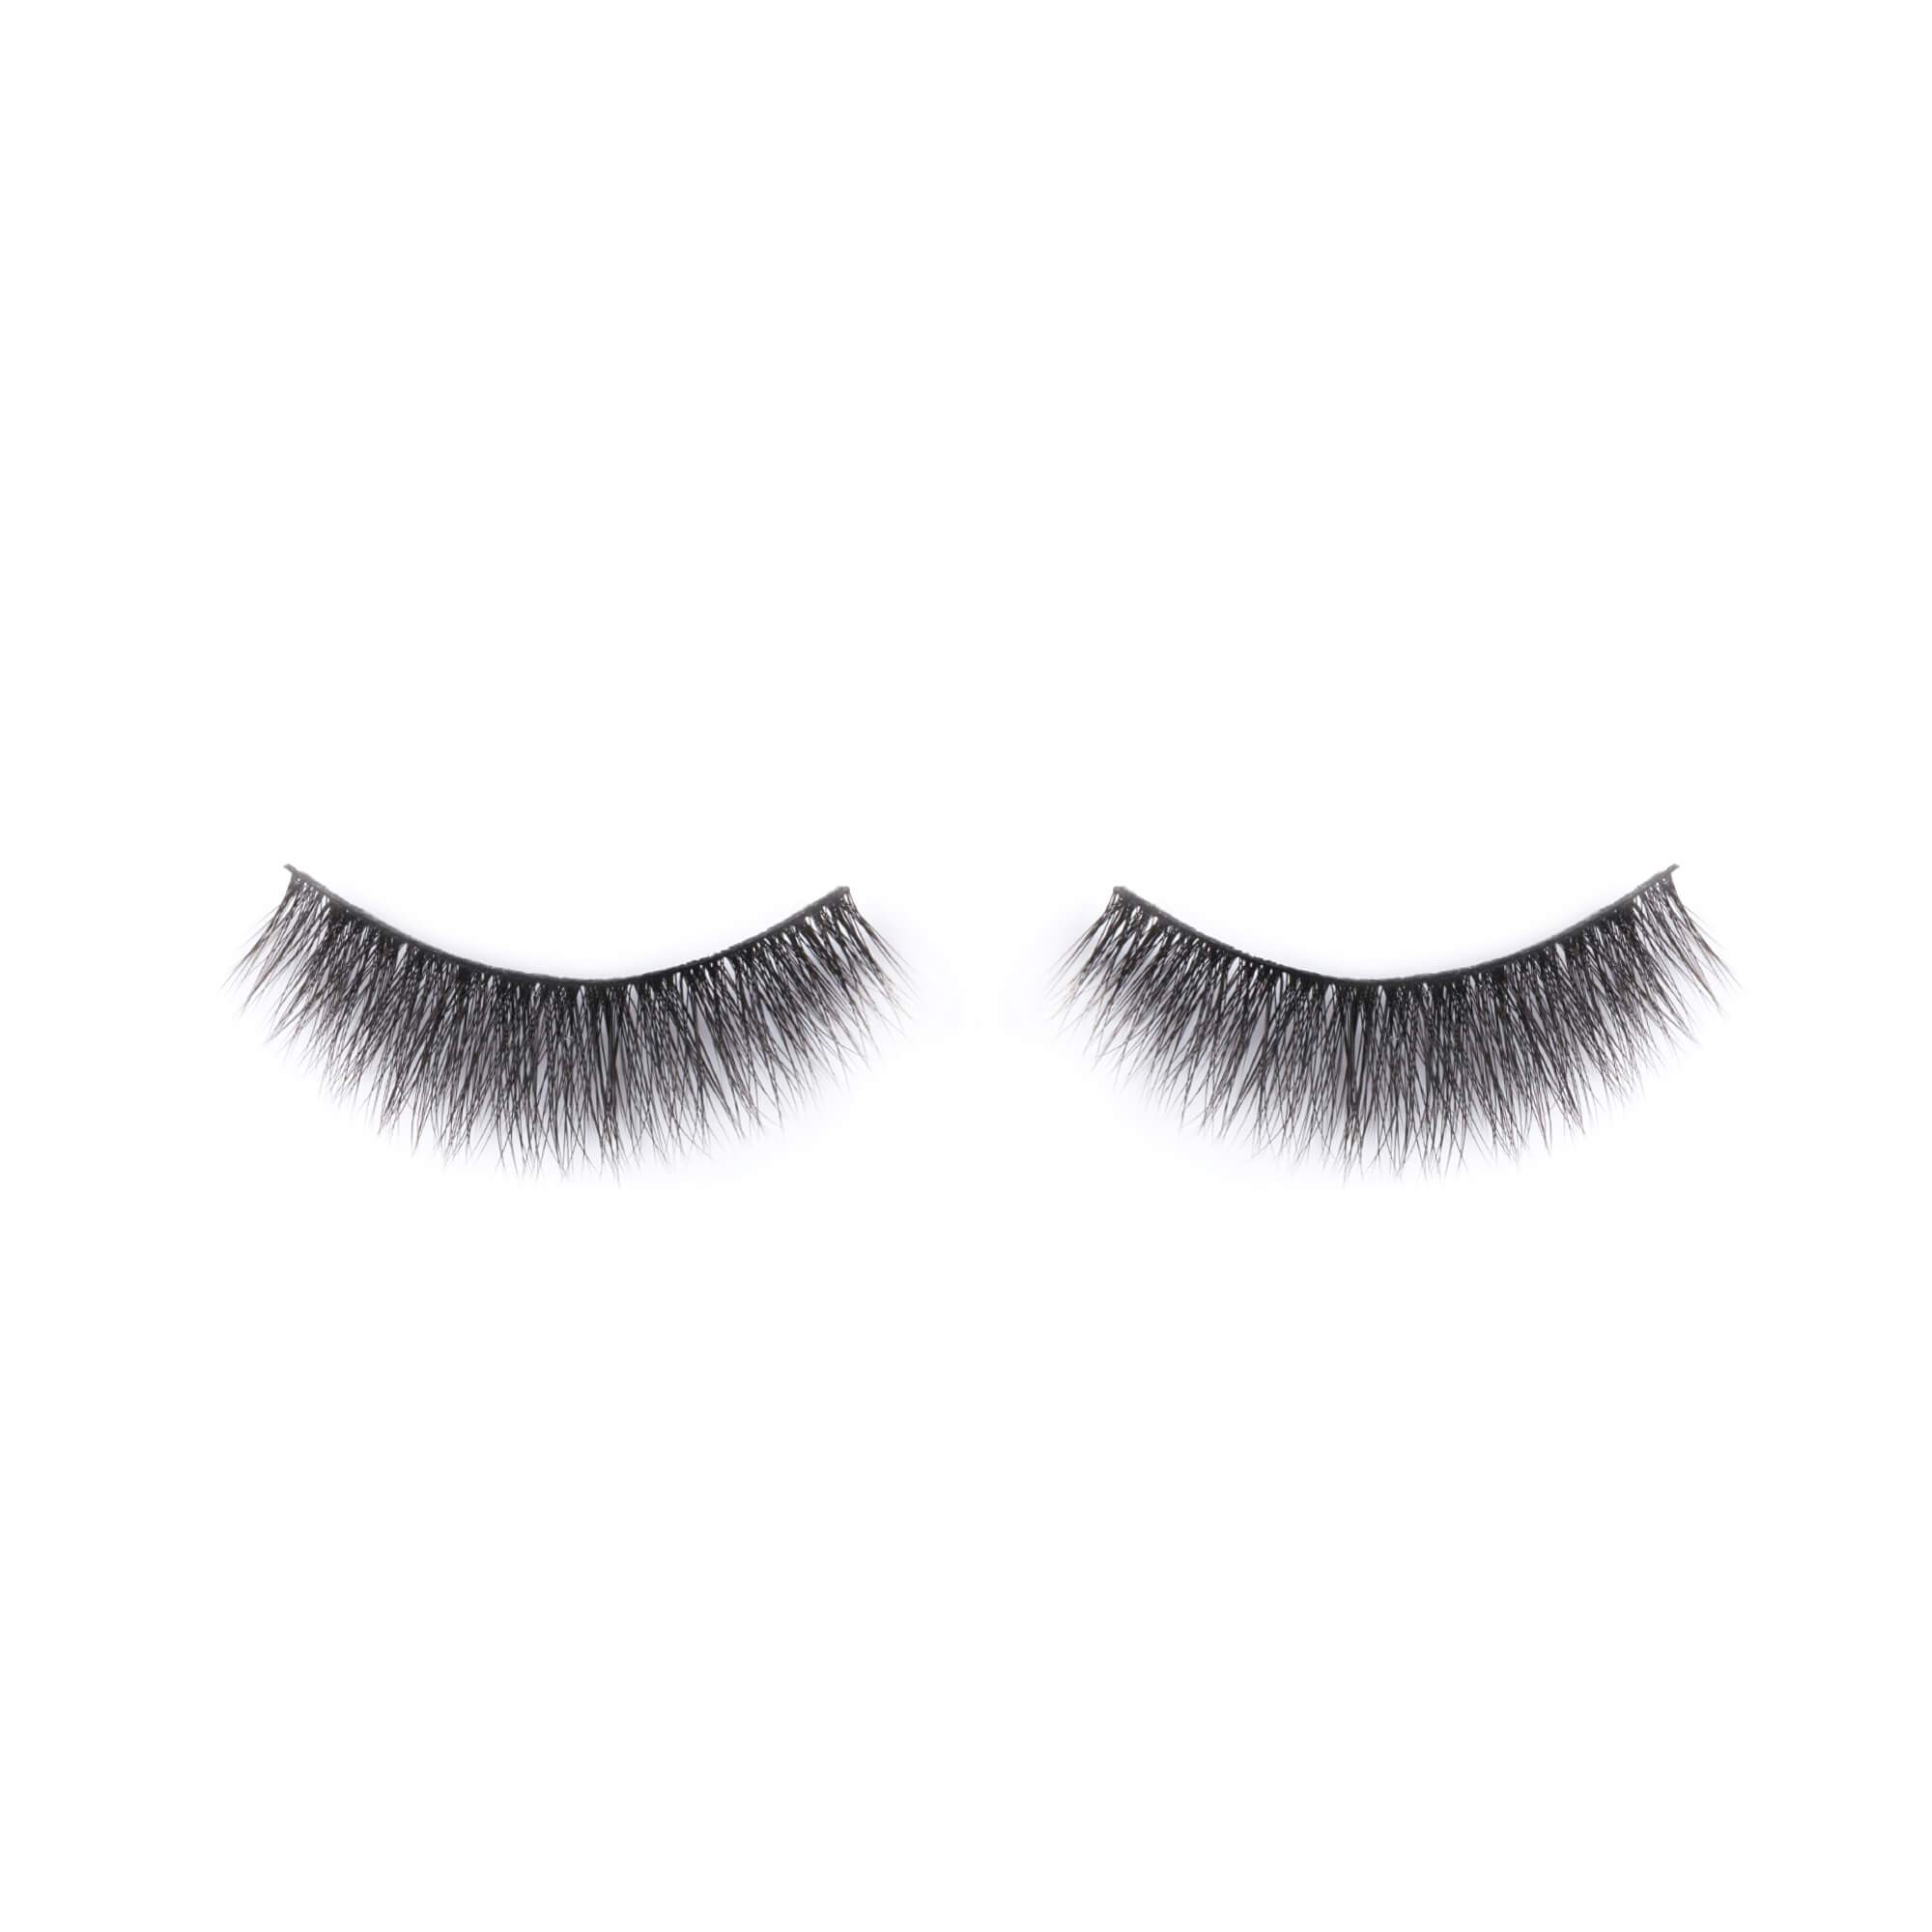 Tidal wave Lashes